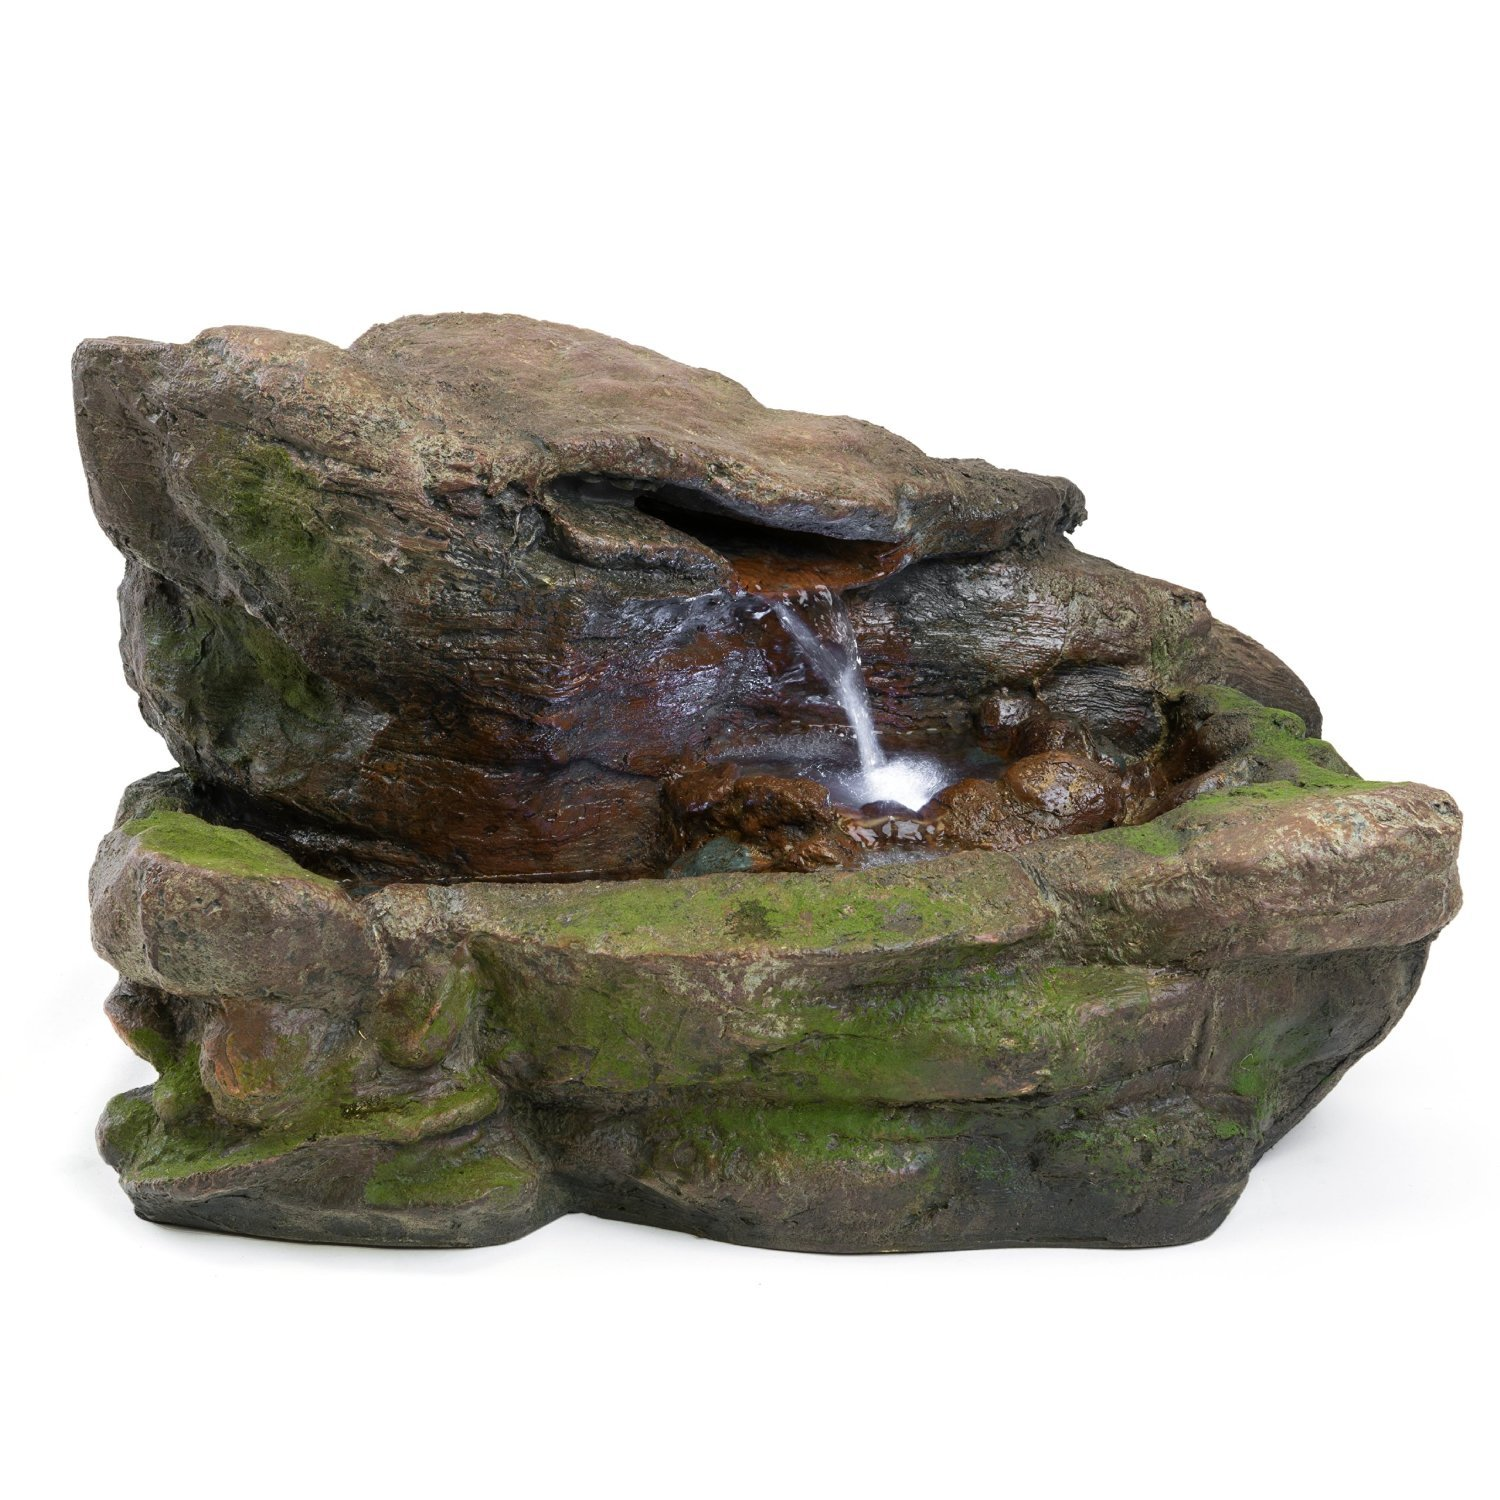 Amazon.com : Kimball Rock Water Fountain: Outdoor Water Feature For Gardens  U0026 Patios. Original Design Includes LED Lights. : Garden U0026 Outdoor